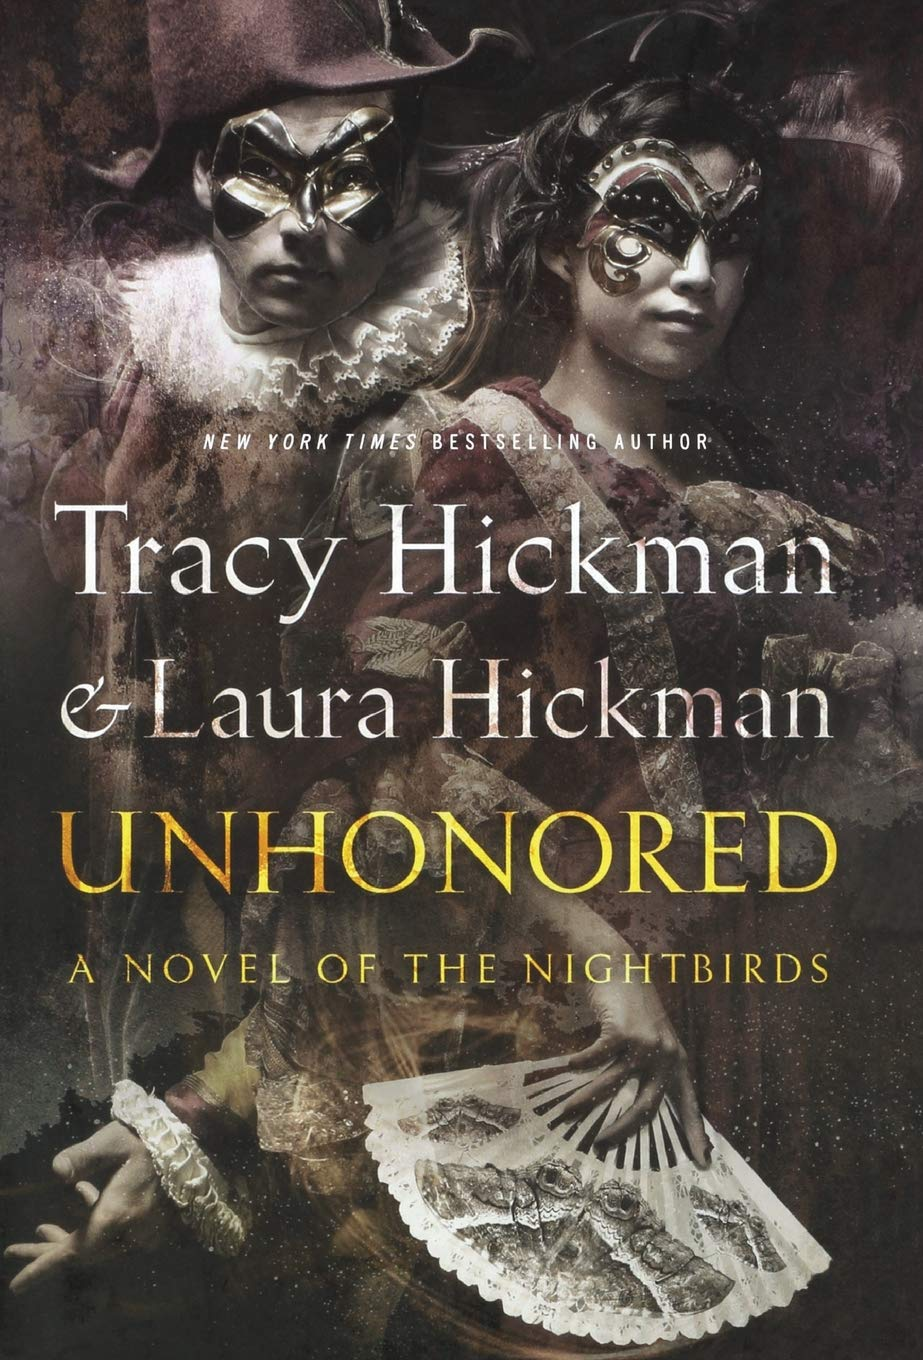 Hickman, UNHONORED, US cover.jpg